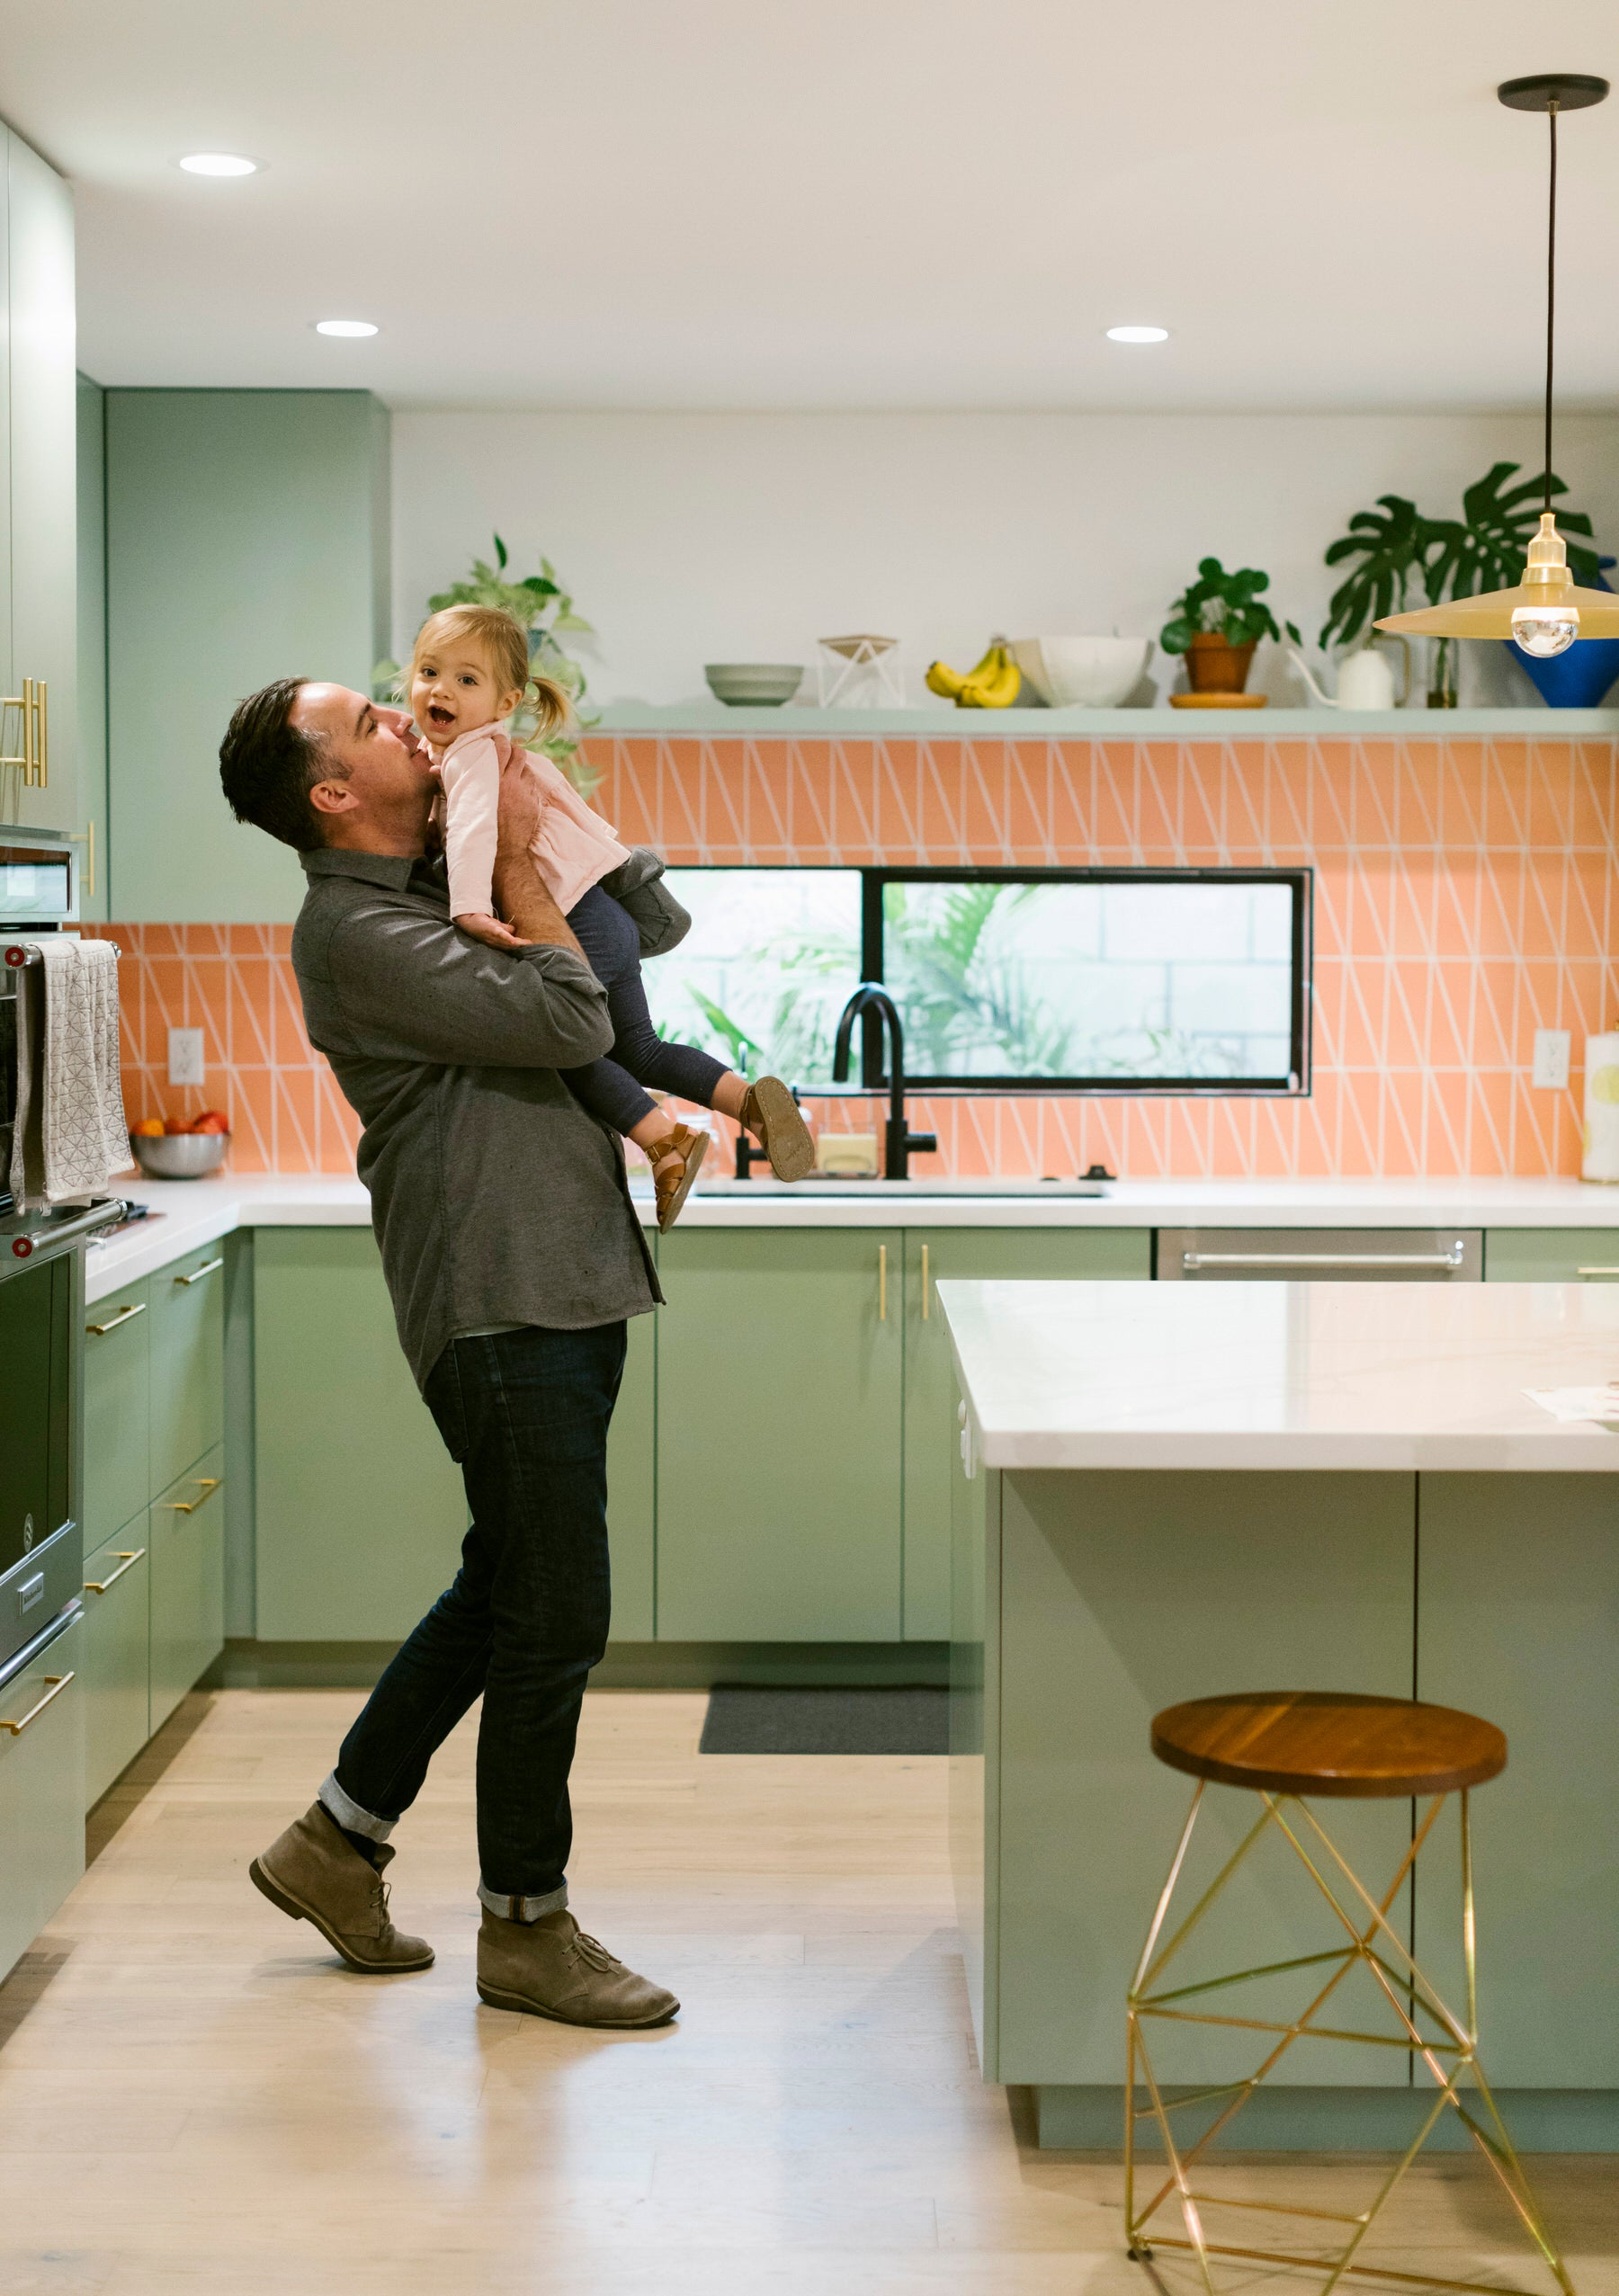 Eric and his daughter in their kitchen